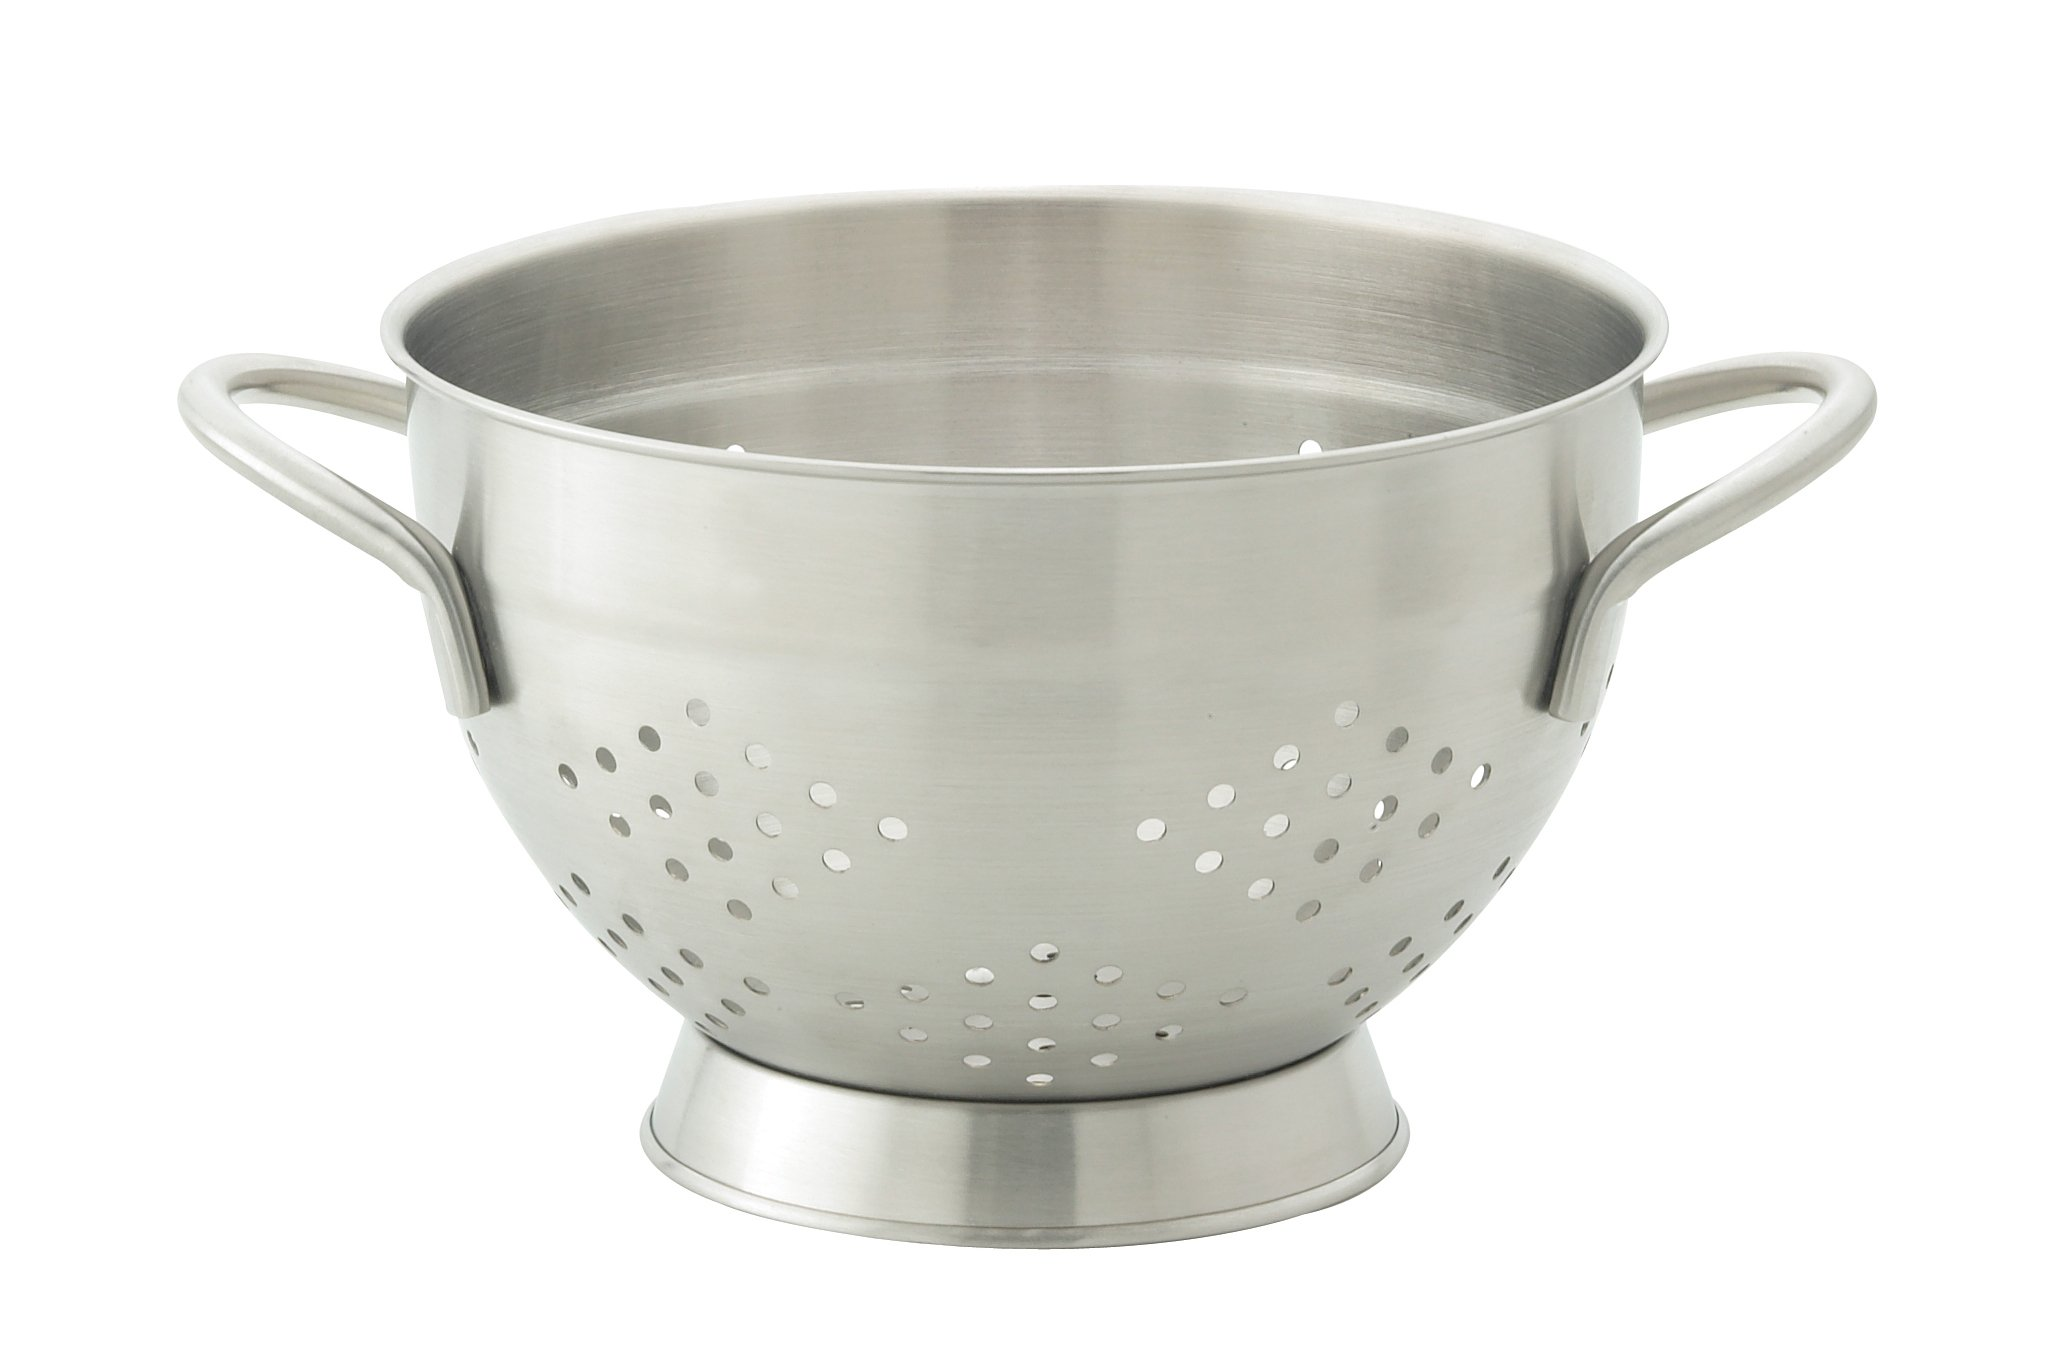 HIC Harold Import Co. 48010 HIC EssentialsStainless Steel Pierced Colander, 2 Quart, by HIC Harold Import Co.